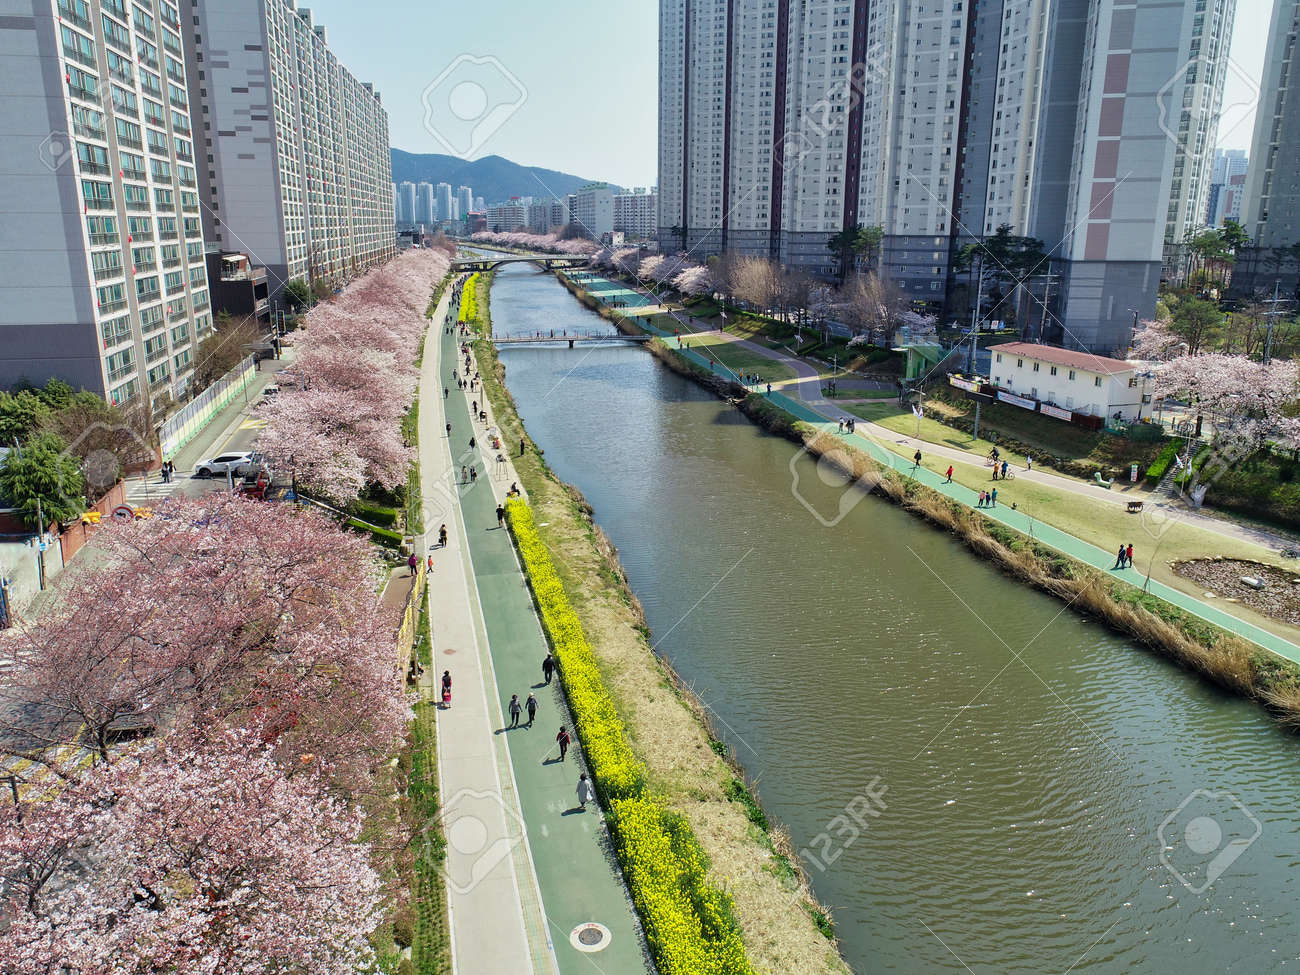 Spring of Oncheoncheon Citizens Park, Busan, South Korea, Asia - 162844830